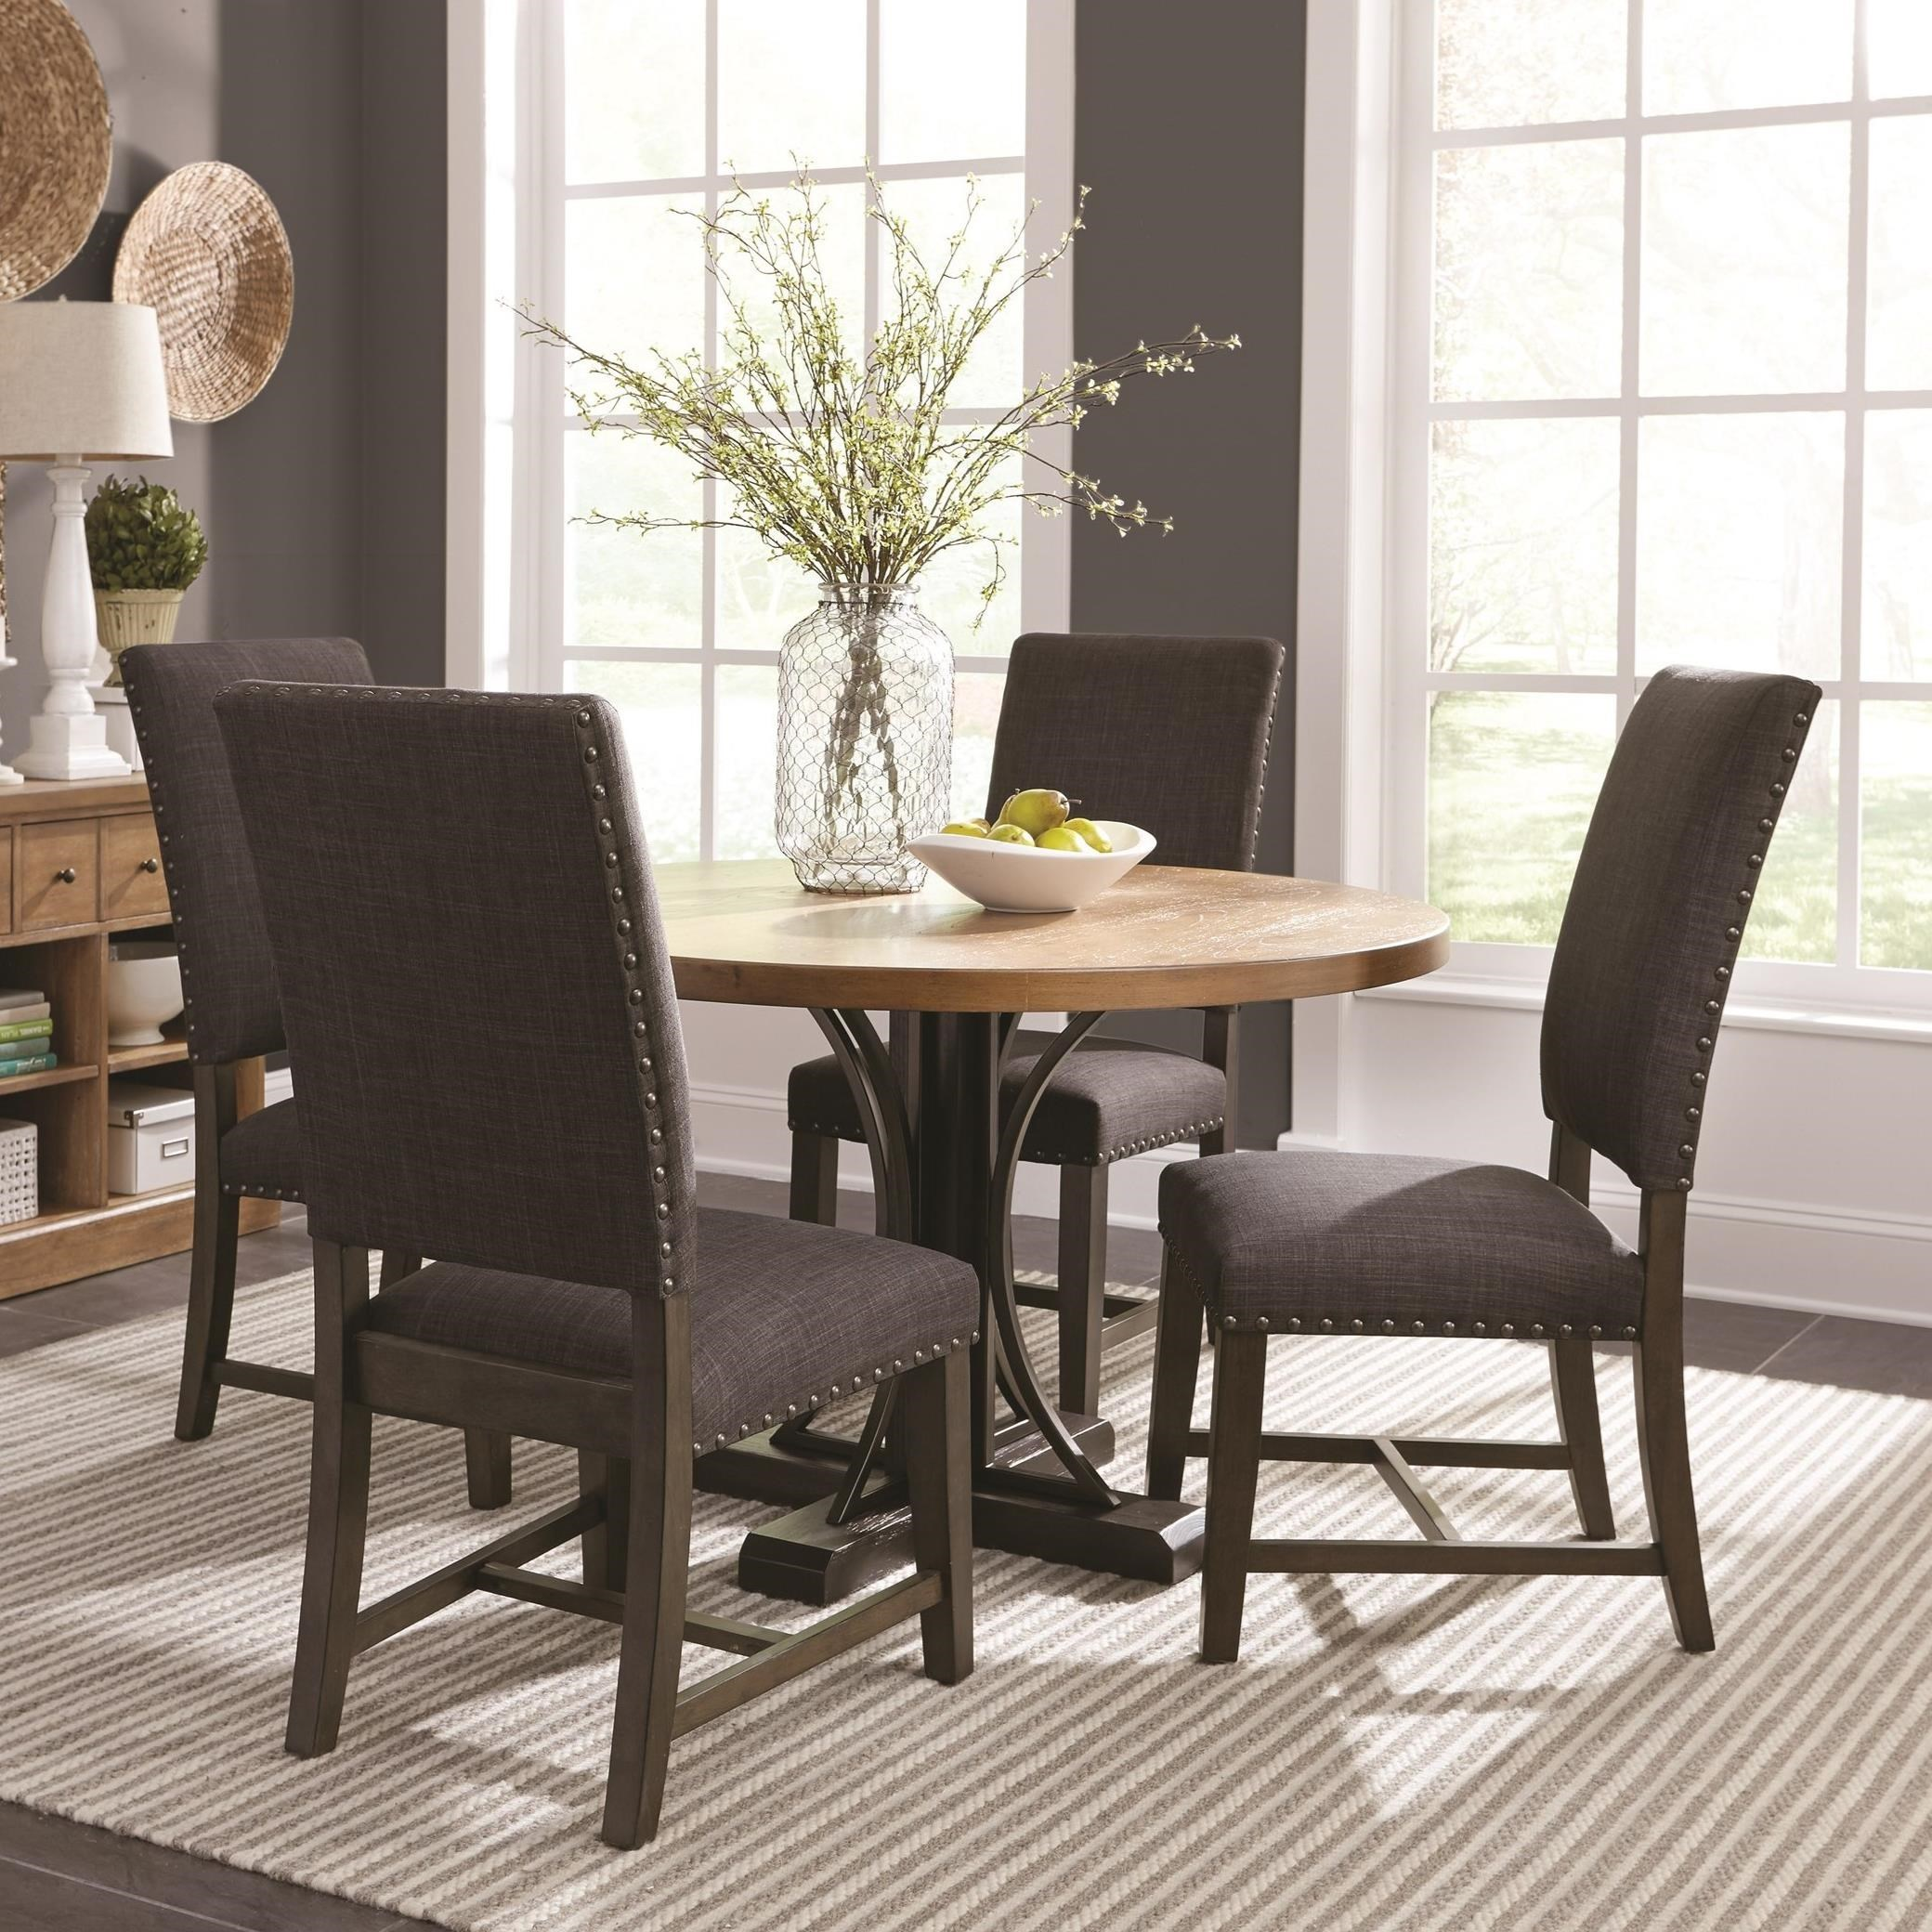 High Quality Scott Living BishopTable And Chair Set ...